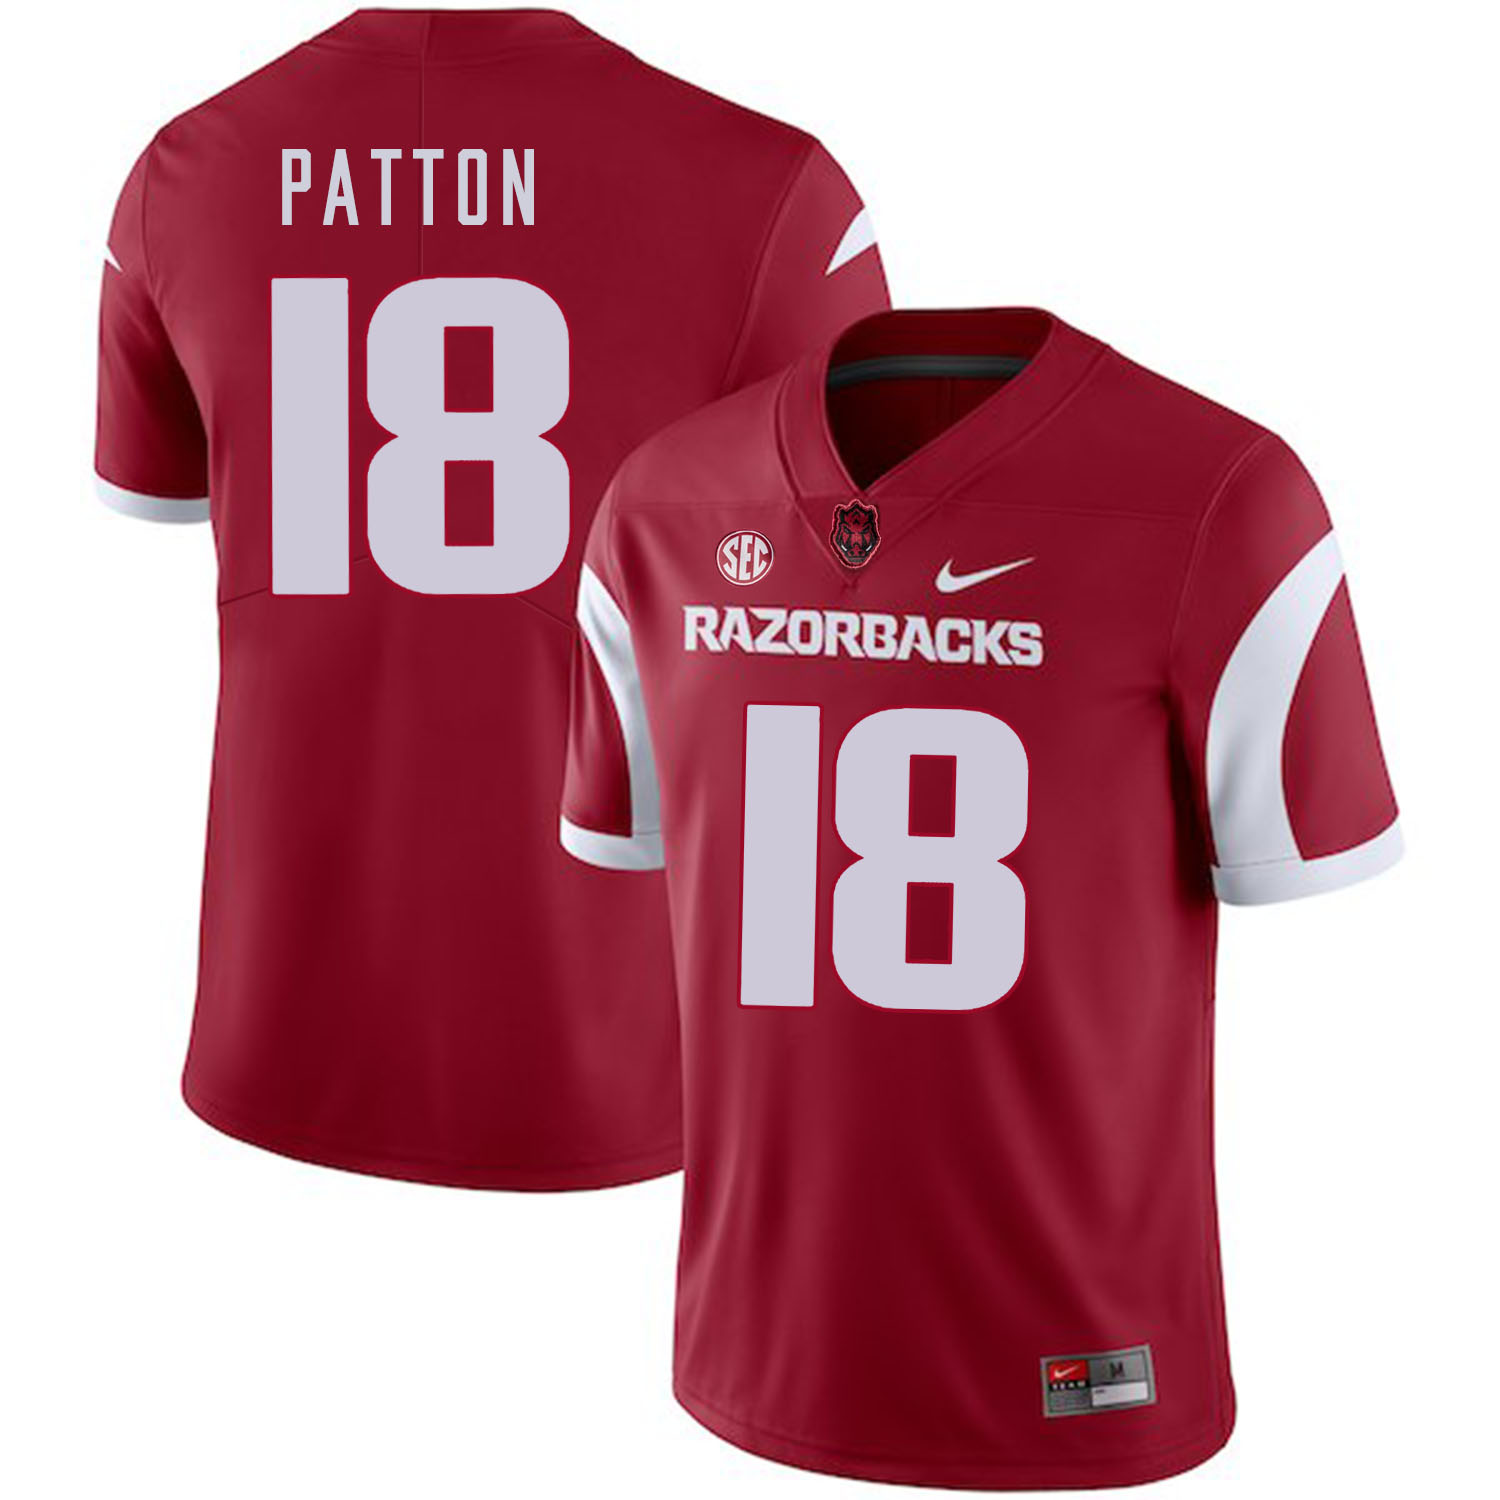 Arkansas Razorbacks 18 Jeremy Patton Red College Football Jersey